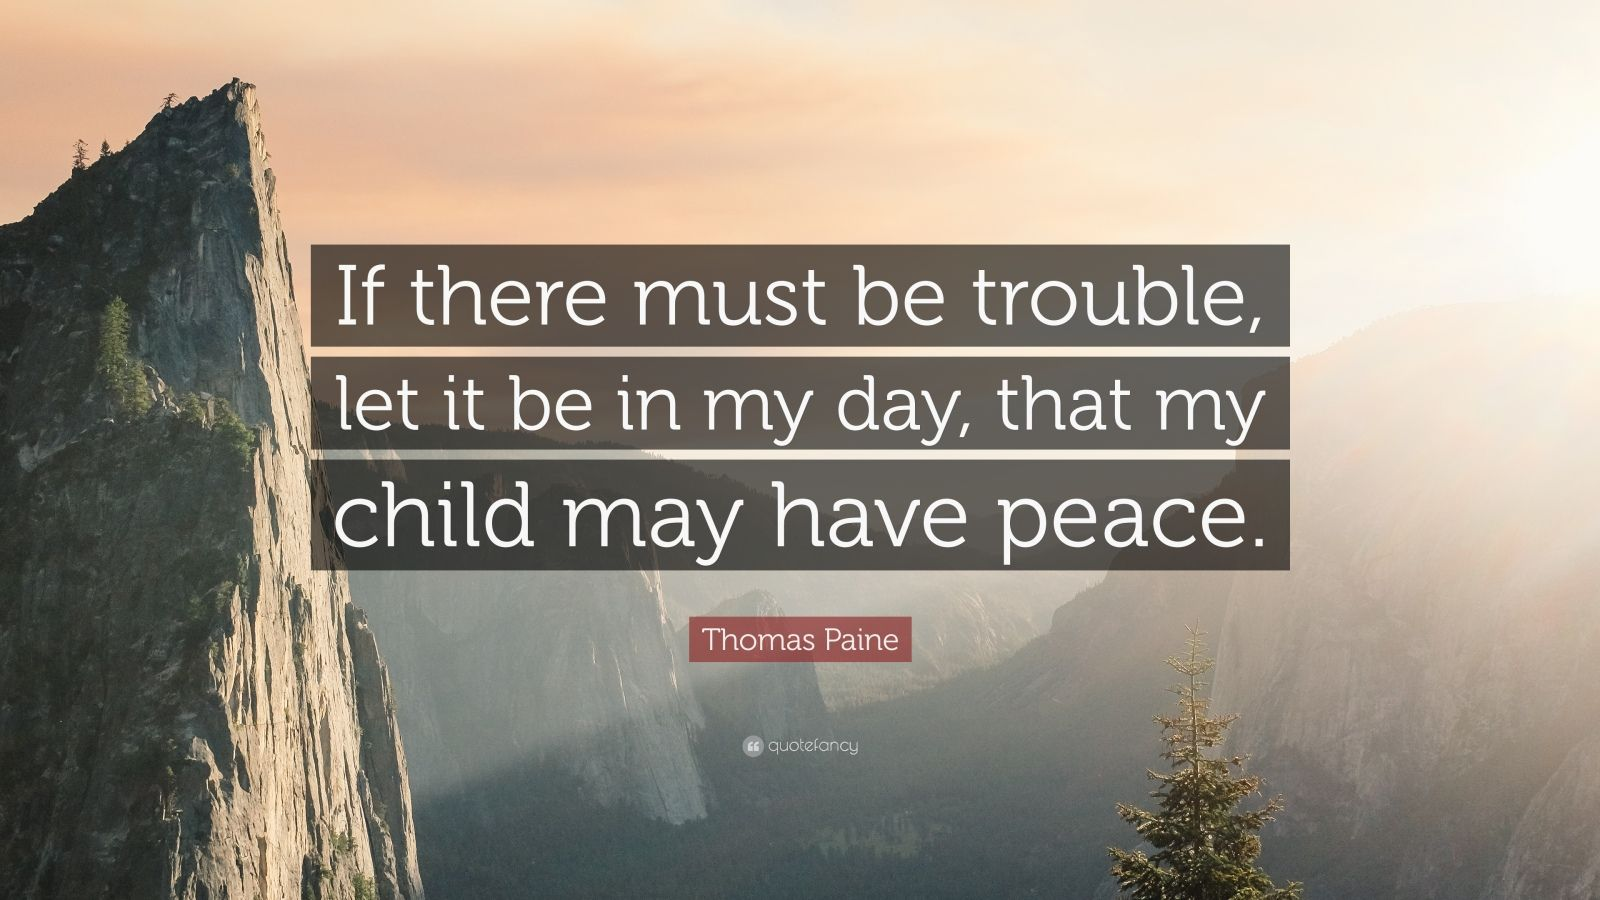 """Thomas Paine Quote: """"If there must be trouble, let it be in my day, that my child may have peace."""""""